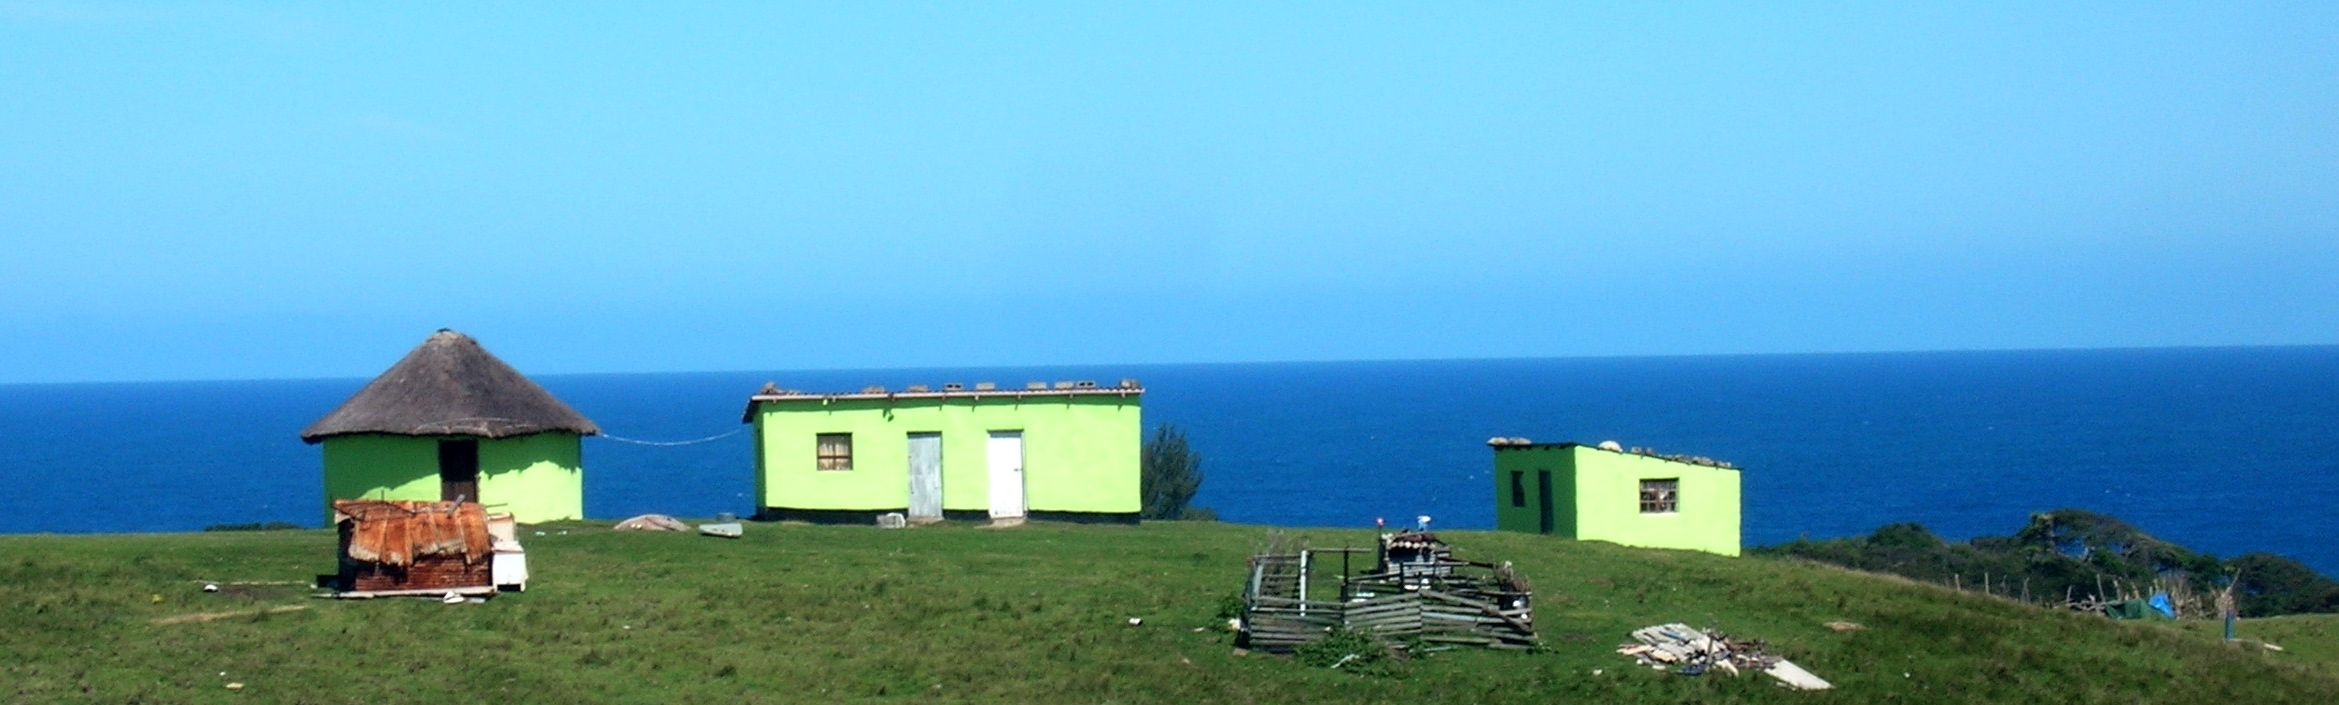 Xhosa Village by the sea